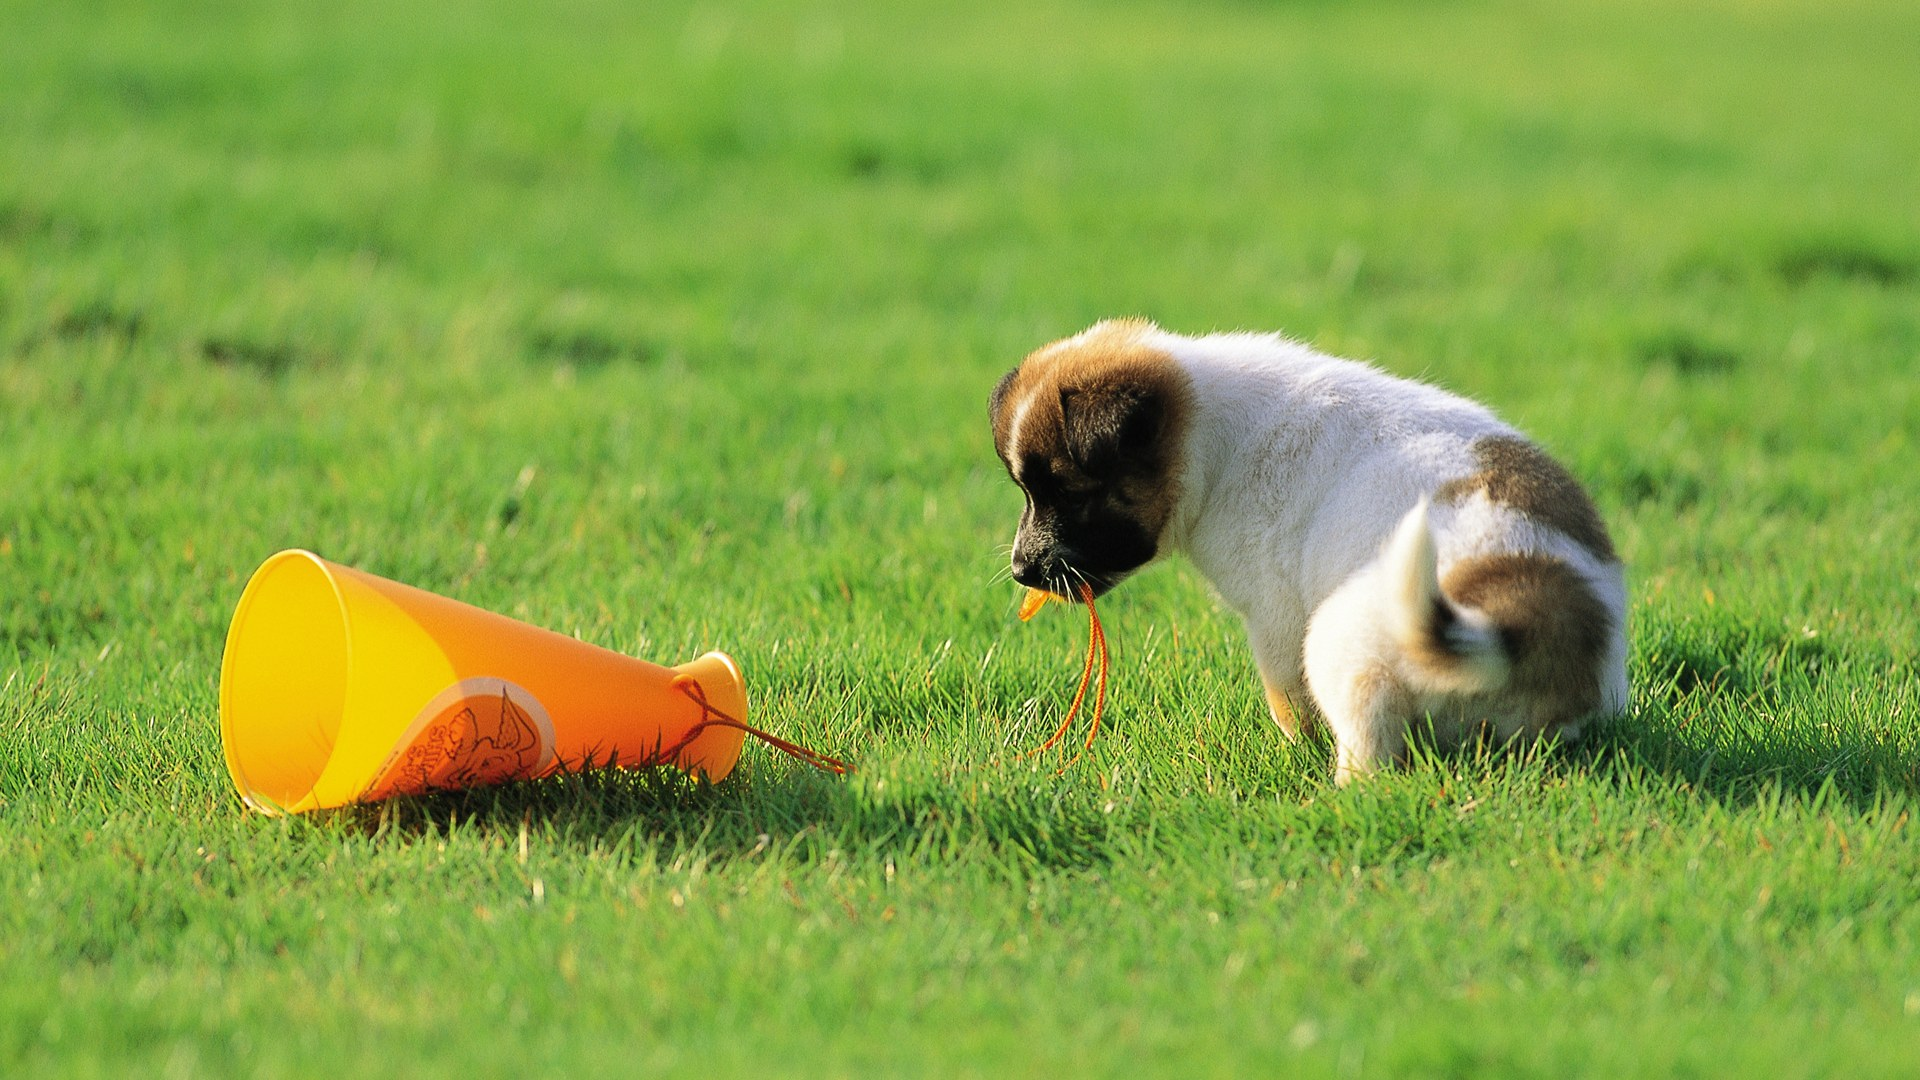 Cute Puppy Wallpapers For Iphone 50 Free Hd Dog Wallpapers